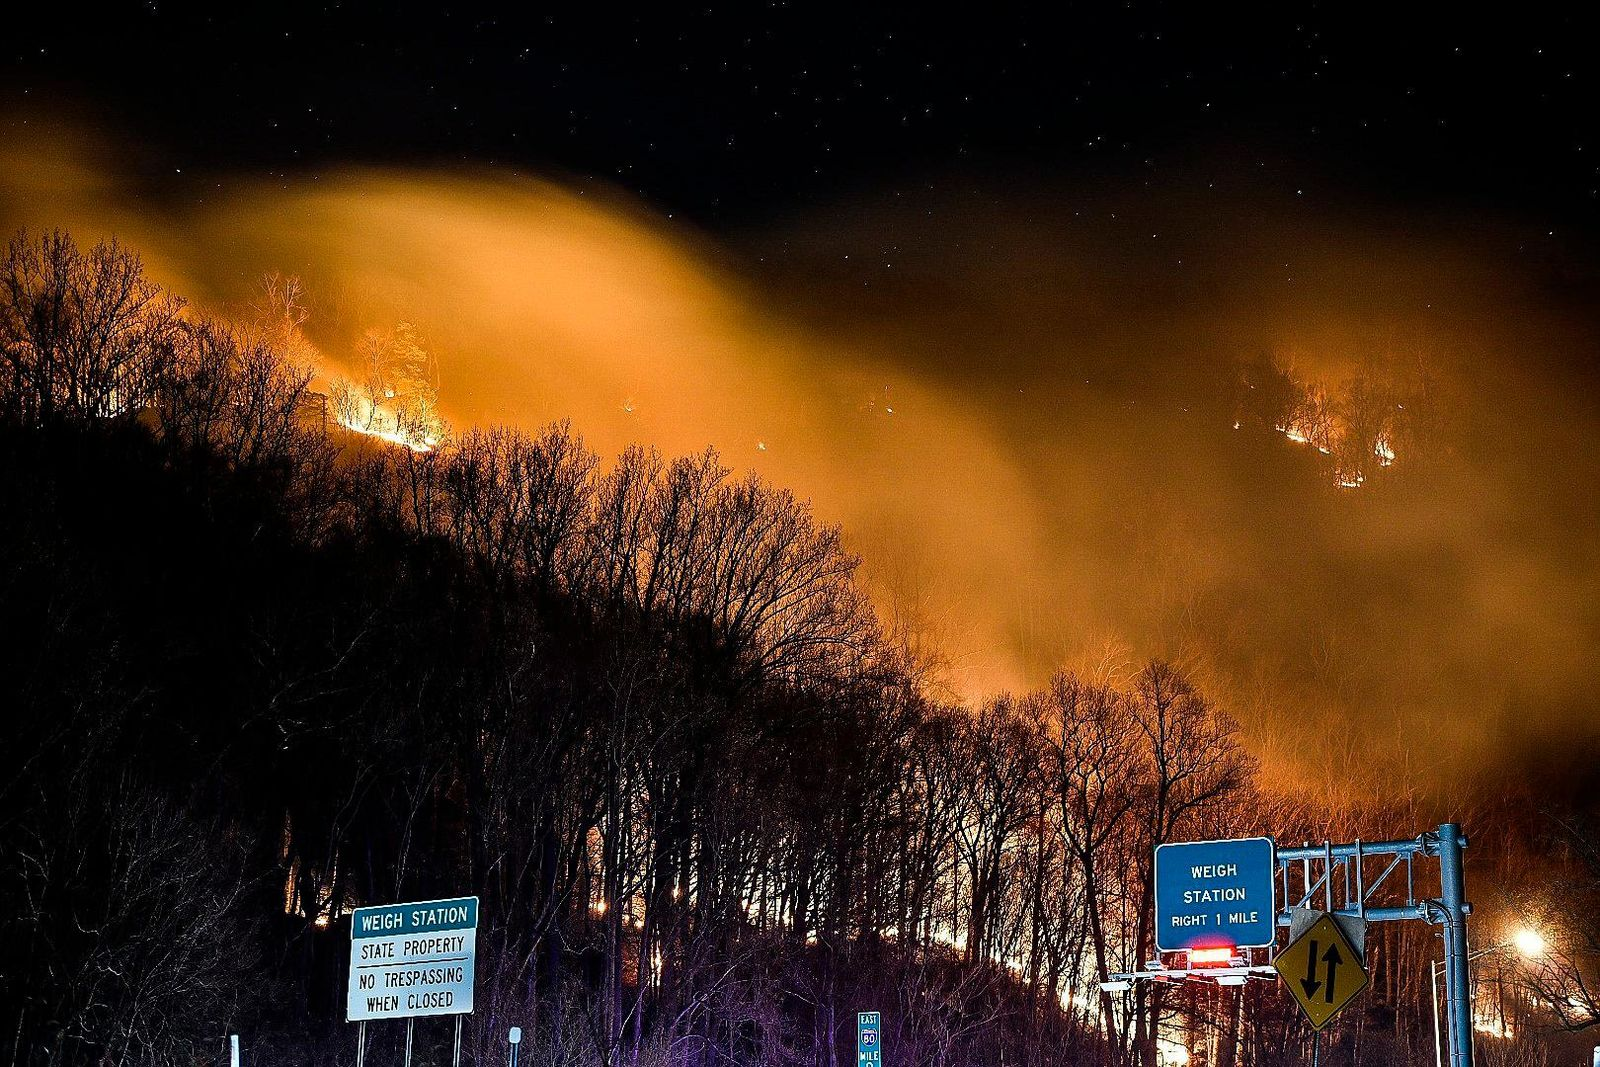 ADDS DATE - This photo provided by Adam Polinger shows a wildfire near the New Jersey side of the Delaware Water Gap National Recreation Area near Hardwick Township, N.J., Sunday, Feb. 23, 2020. (Adam Polinger via AP)